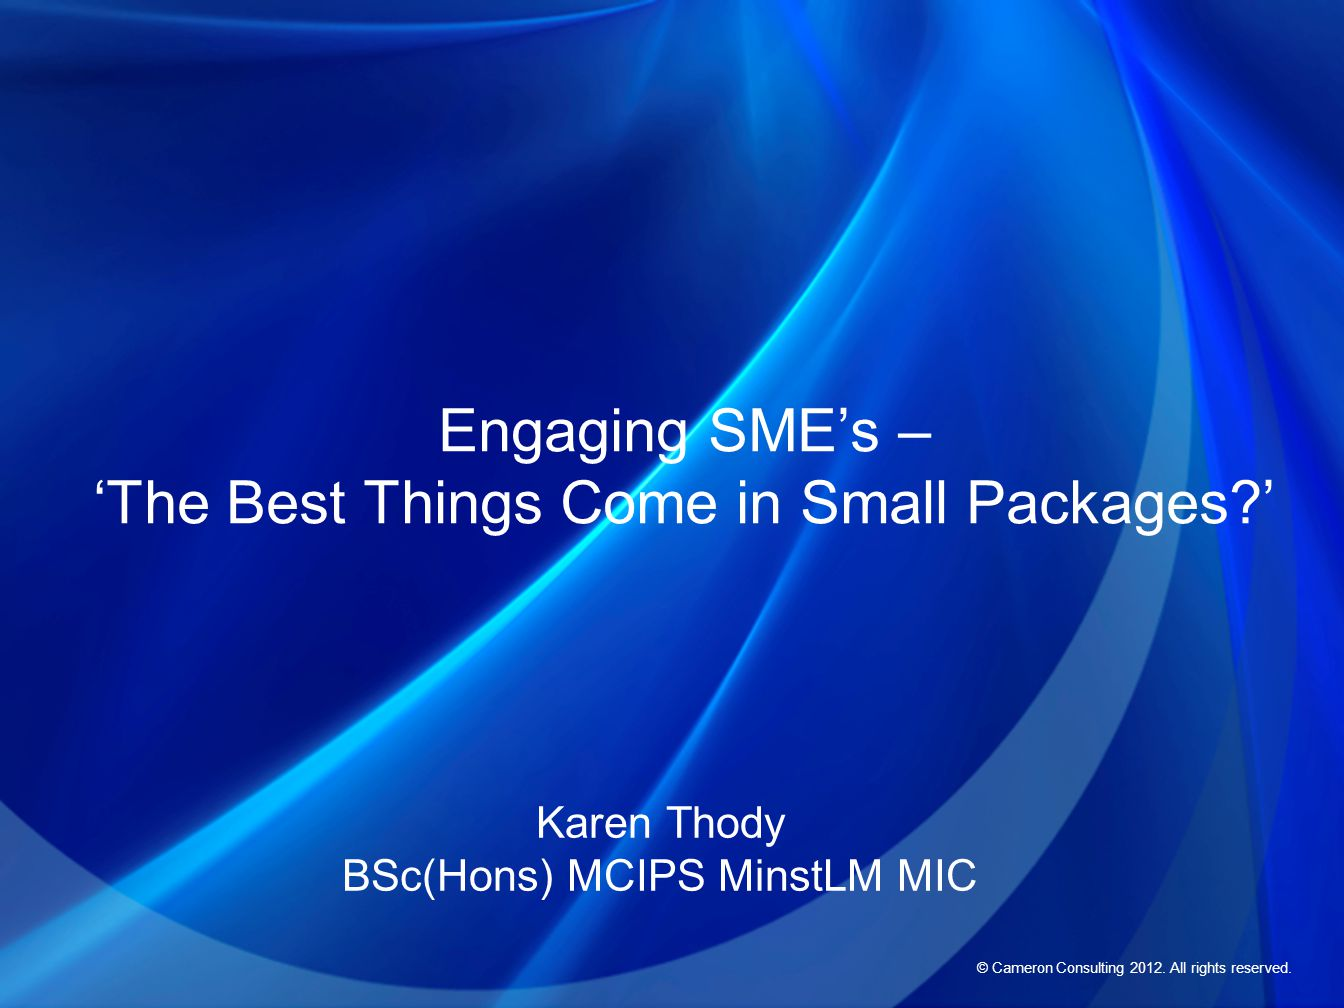 © Cameron Consulting 2012. All rights reserved. Engaging SME's – 'The Best Things Come in Small Packages?' Karen Thody BSc(Hons) MCIPS MinstLM MIC